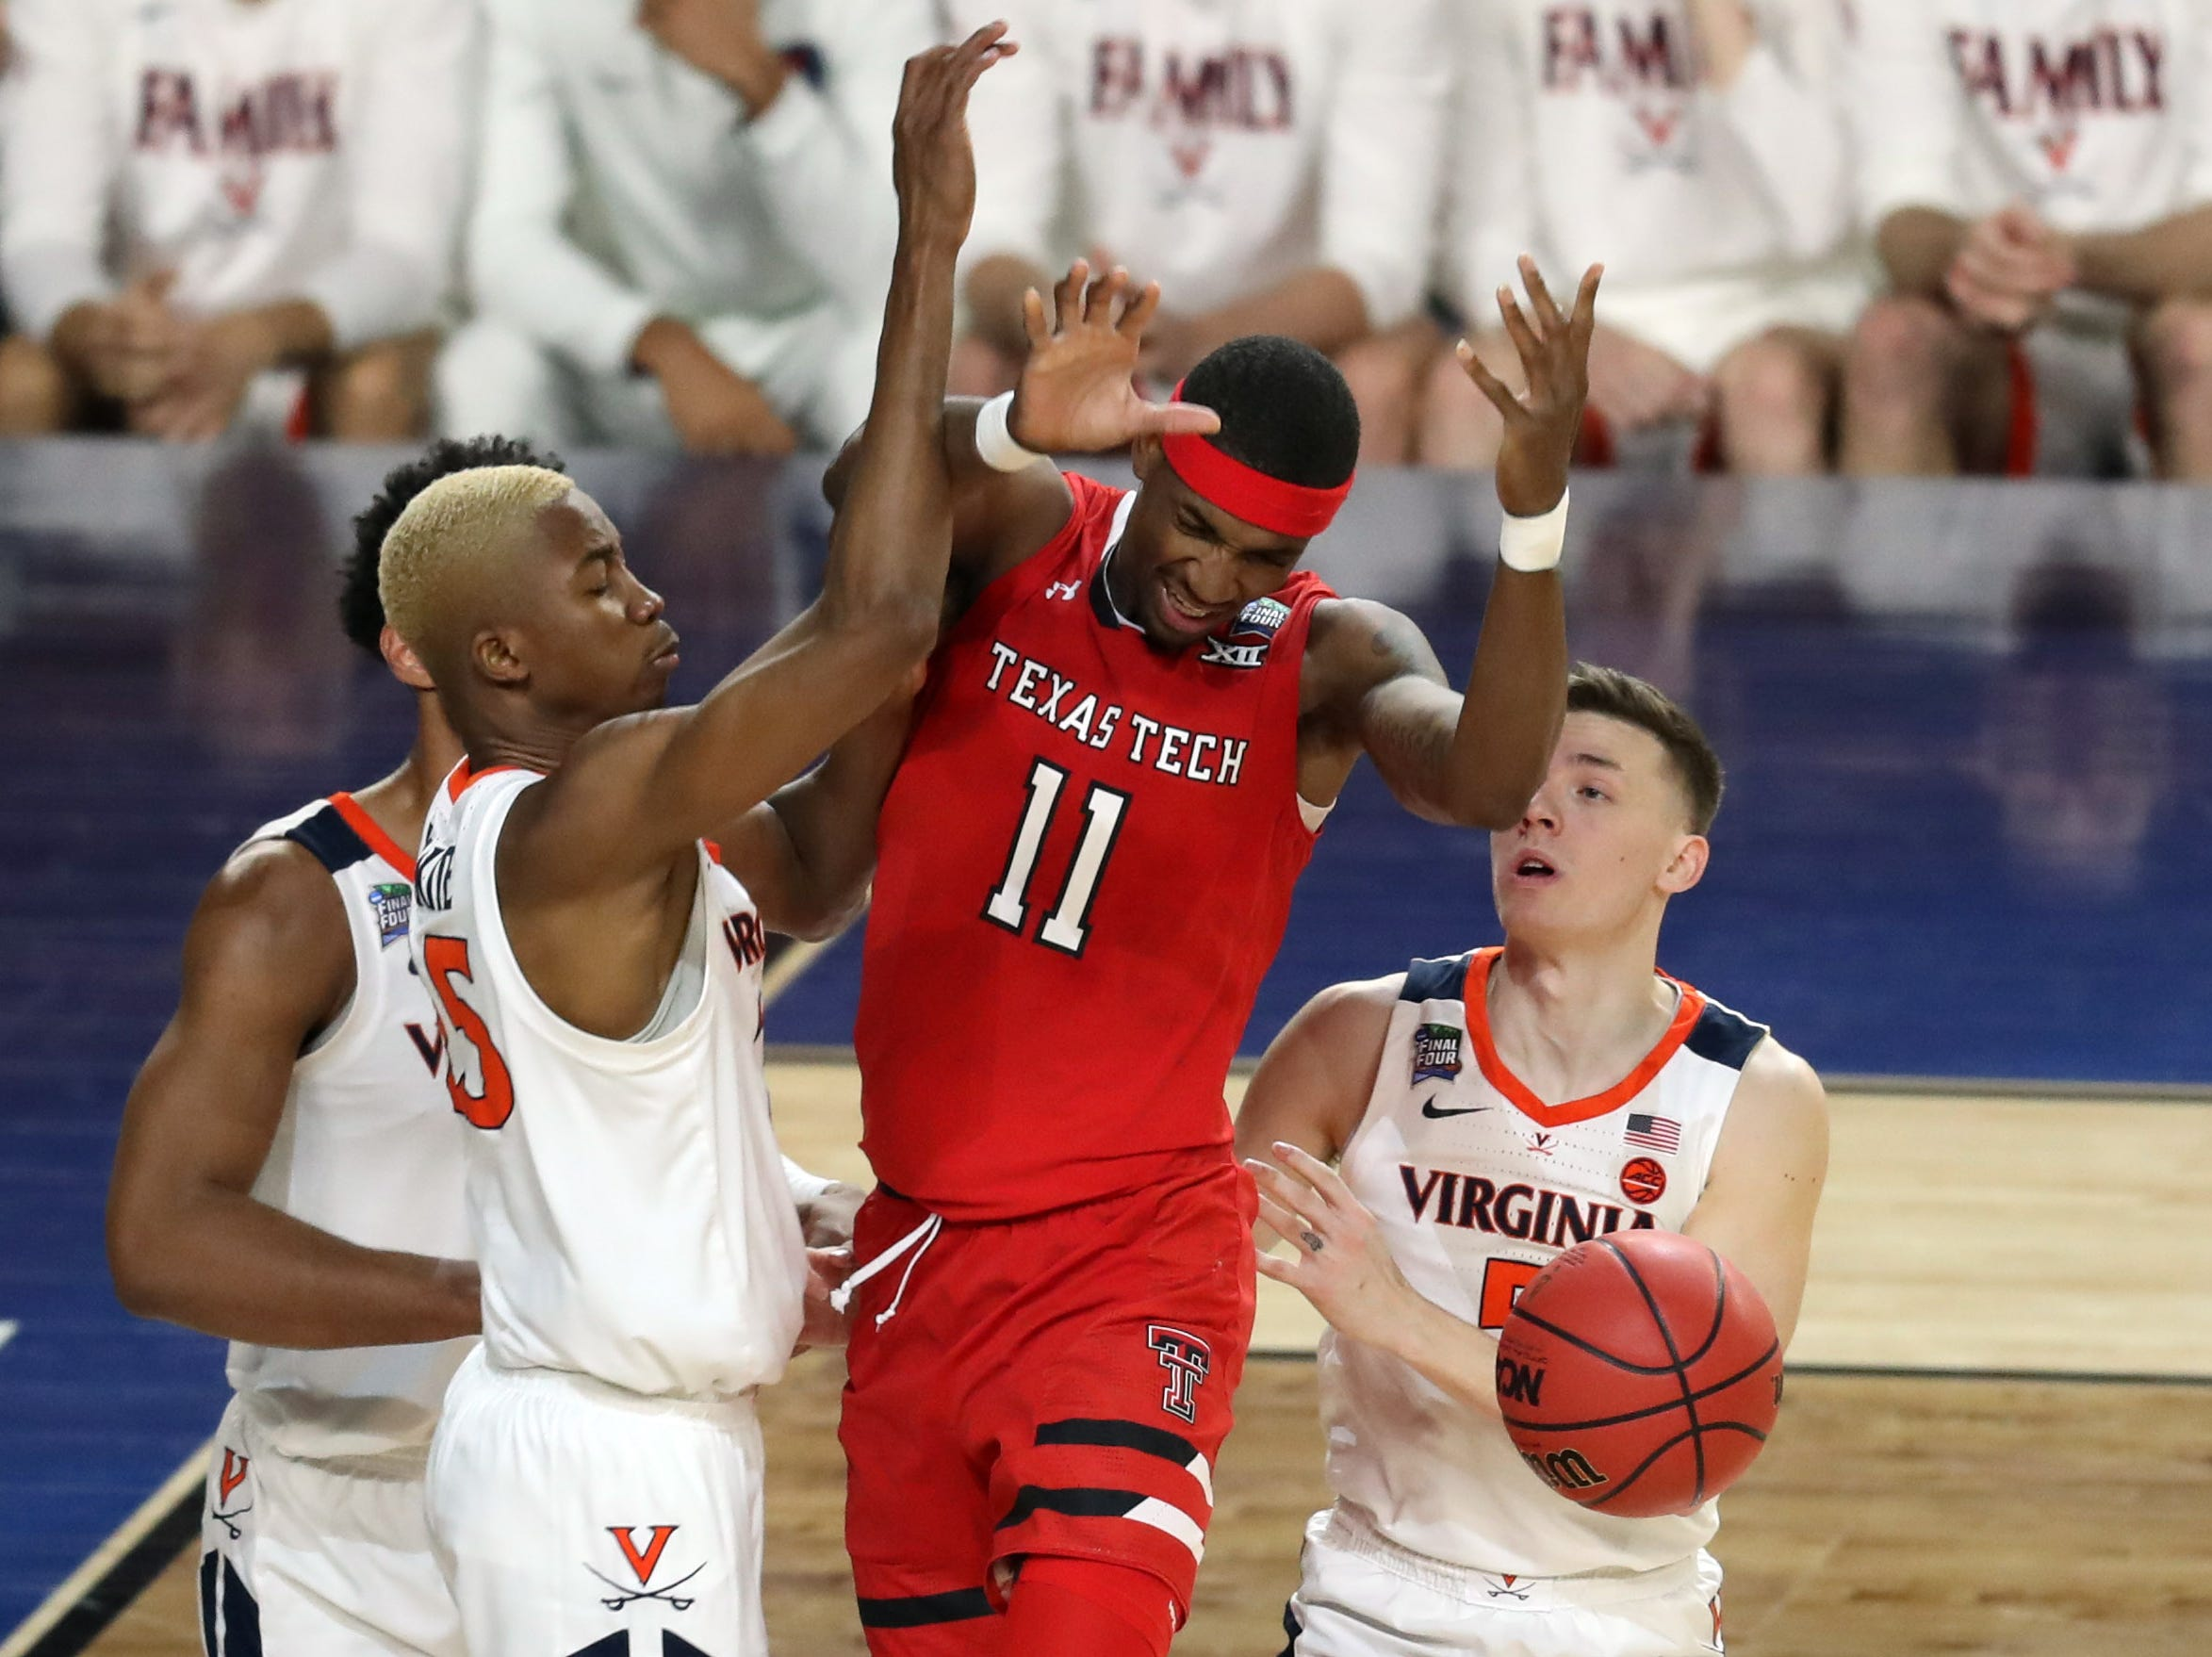 Apr 8, 2019; Minneapolis, MN, USA; Texas Tech Red Raiders forward Tariq Owens (11) loses control over the ball while Virginia Cavaliers forward Mamadi Diakite (25) and guard Kyle Guy (5) defend during the first half in the championship game of the 2019 men's Final Four at US Bank Stadium. Mandatory Credit: Brace Hemmelgarn-USA TODAY Sports